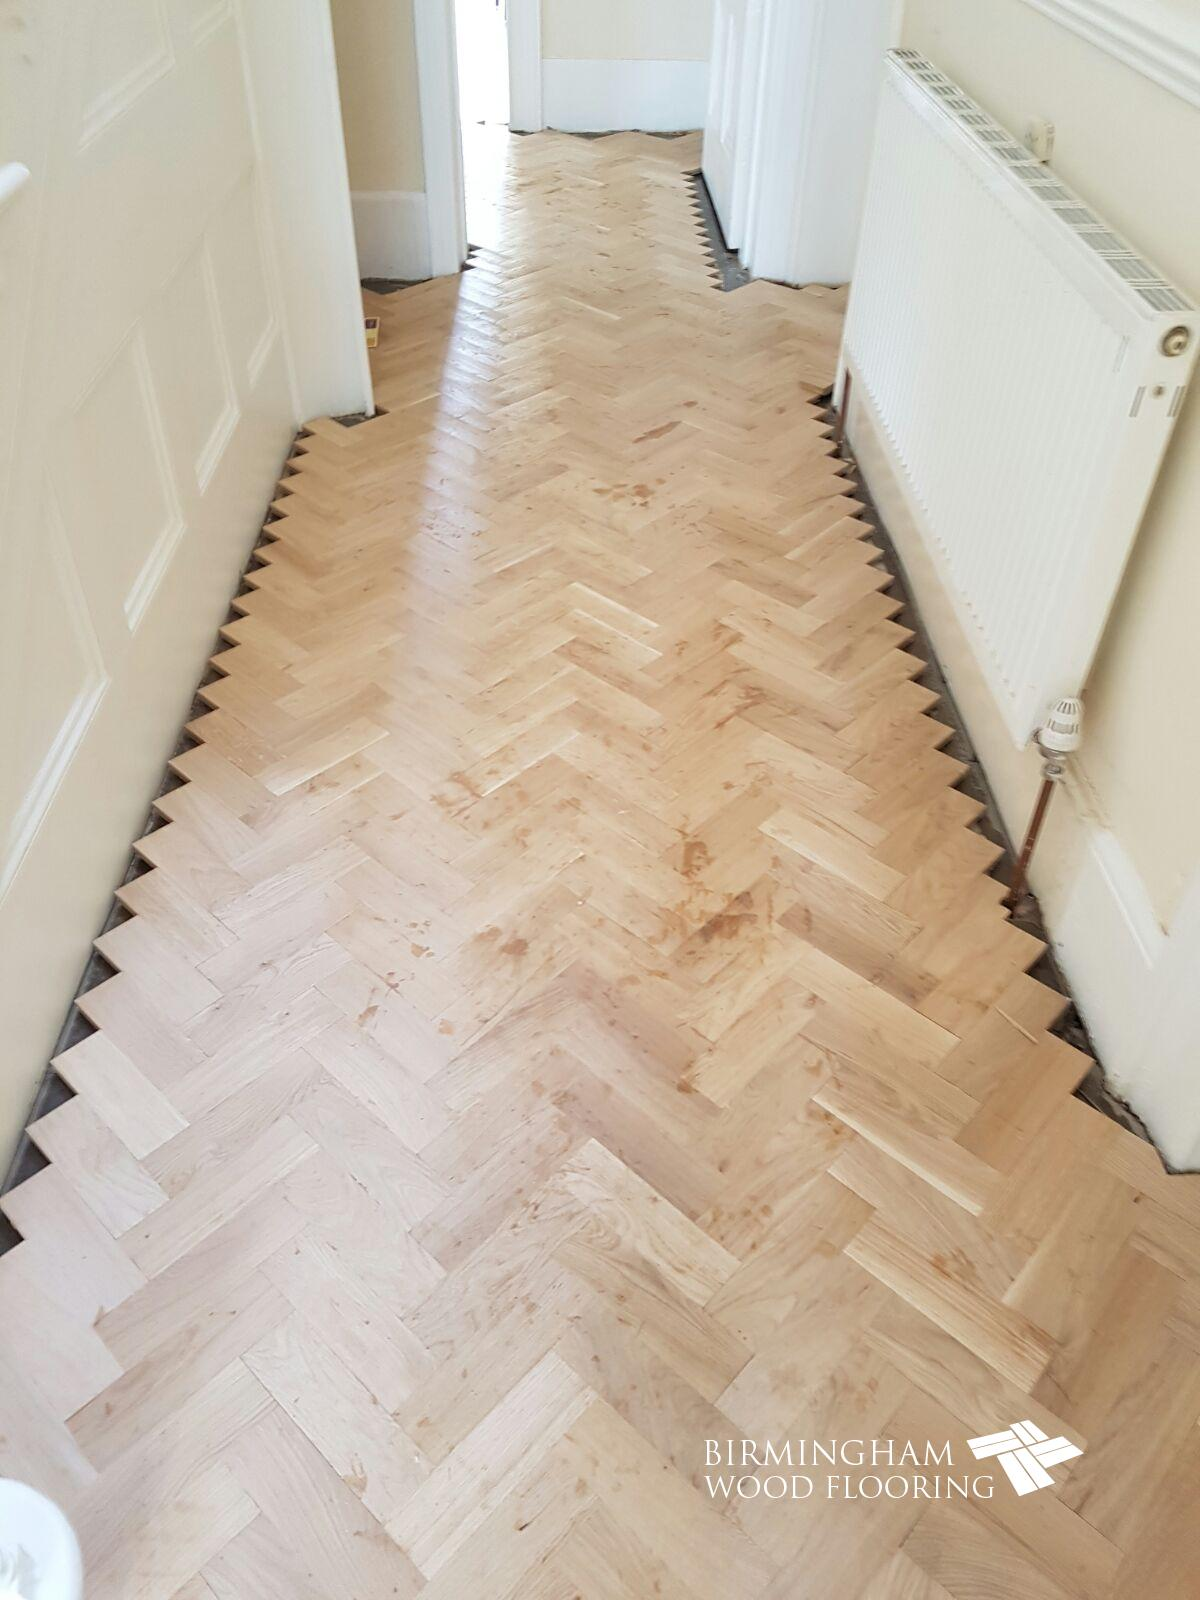 Parquet-floor-ready-to-have-the-Wenge-Feature-strip-and-border-installed-Edgbaston-Birmingham